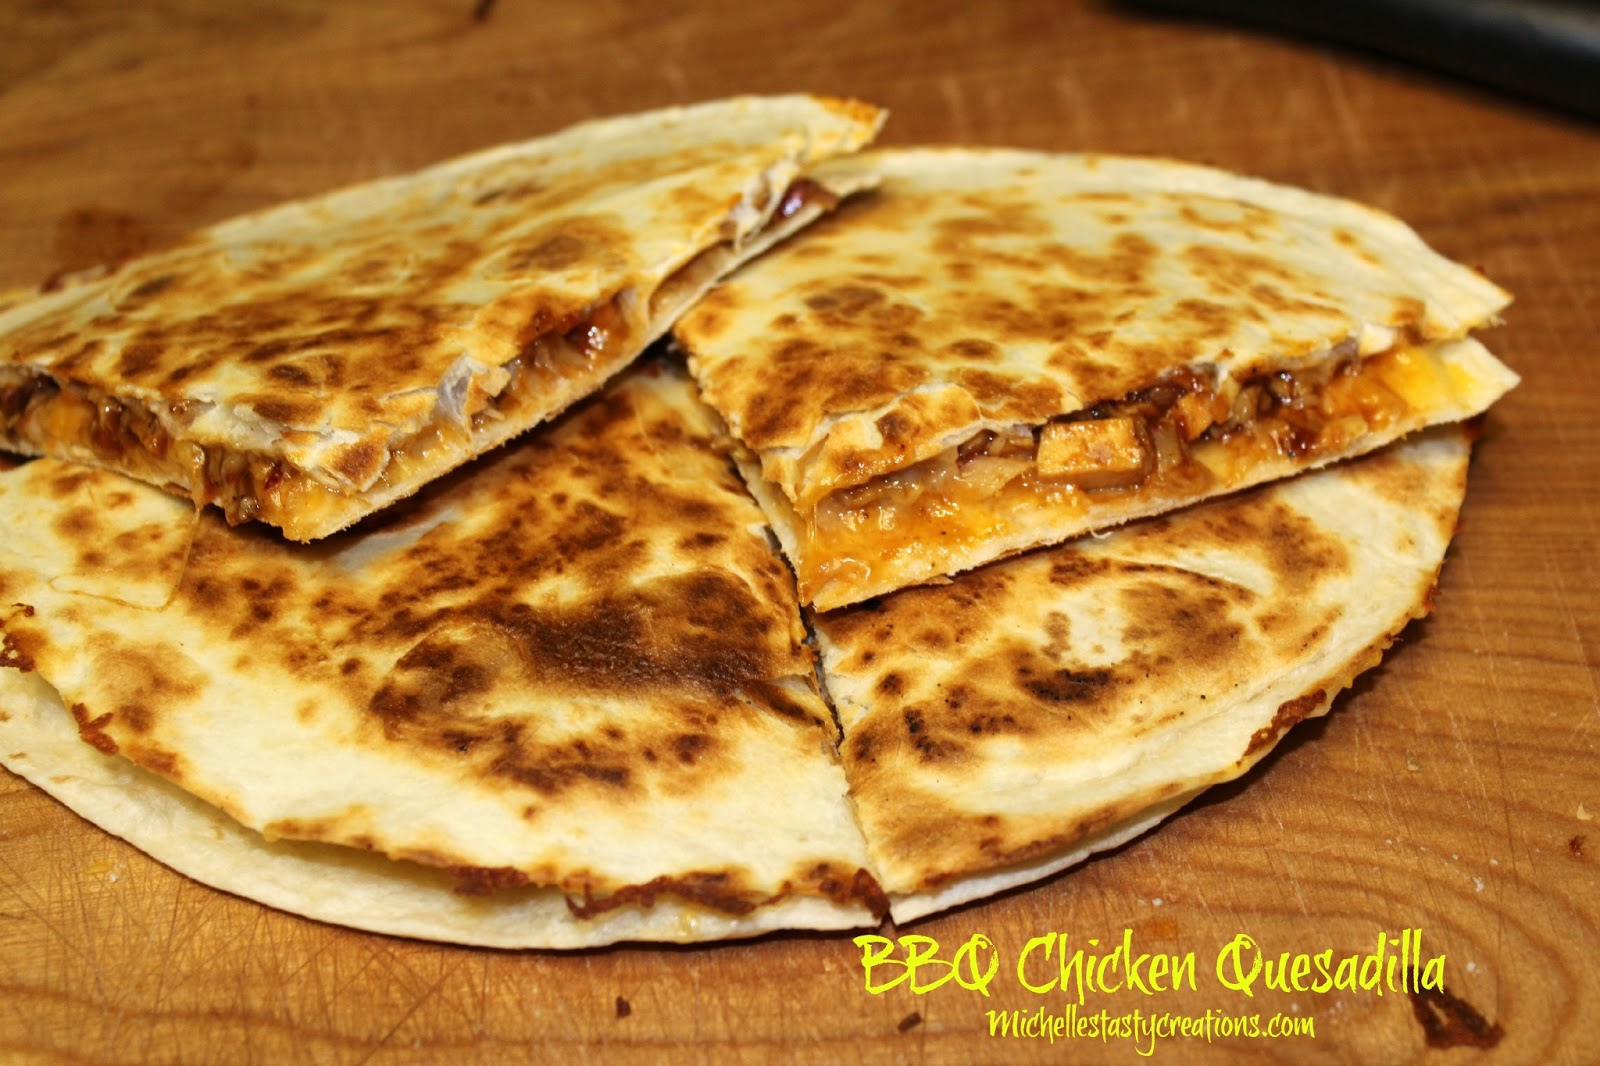 Michelle's Tasty Creations: BBQ Chicken Quesadillas